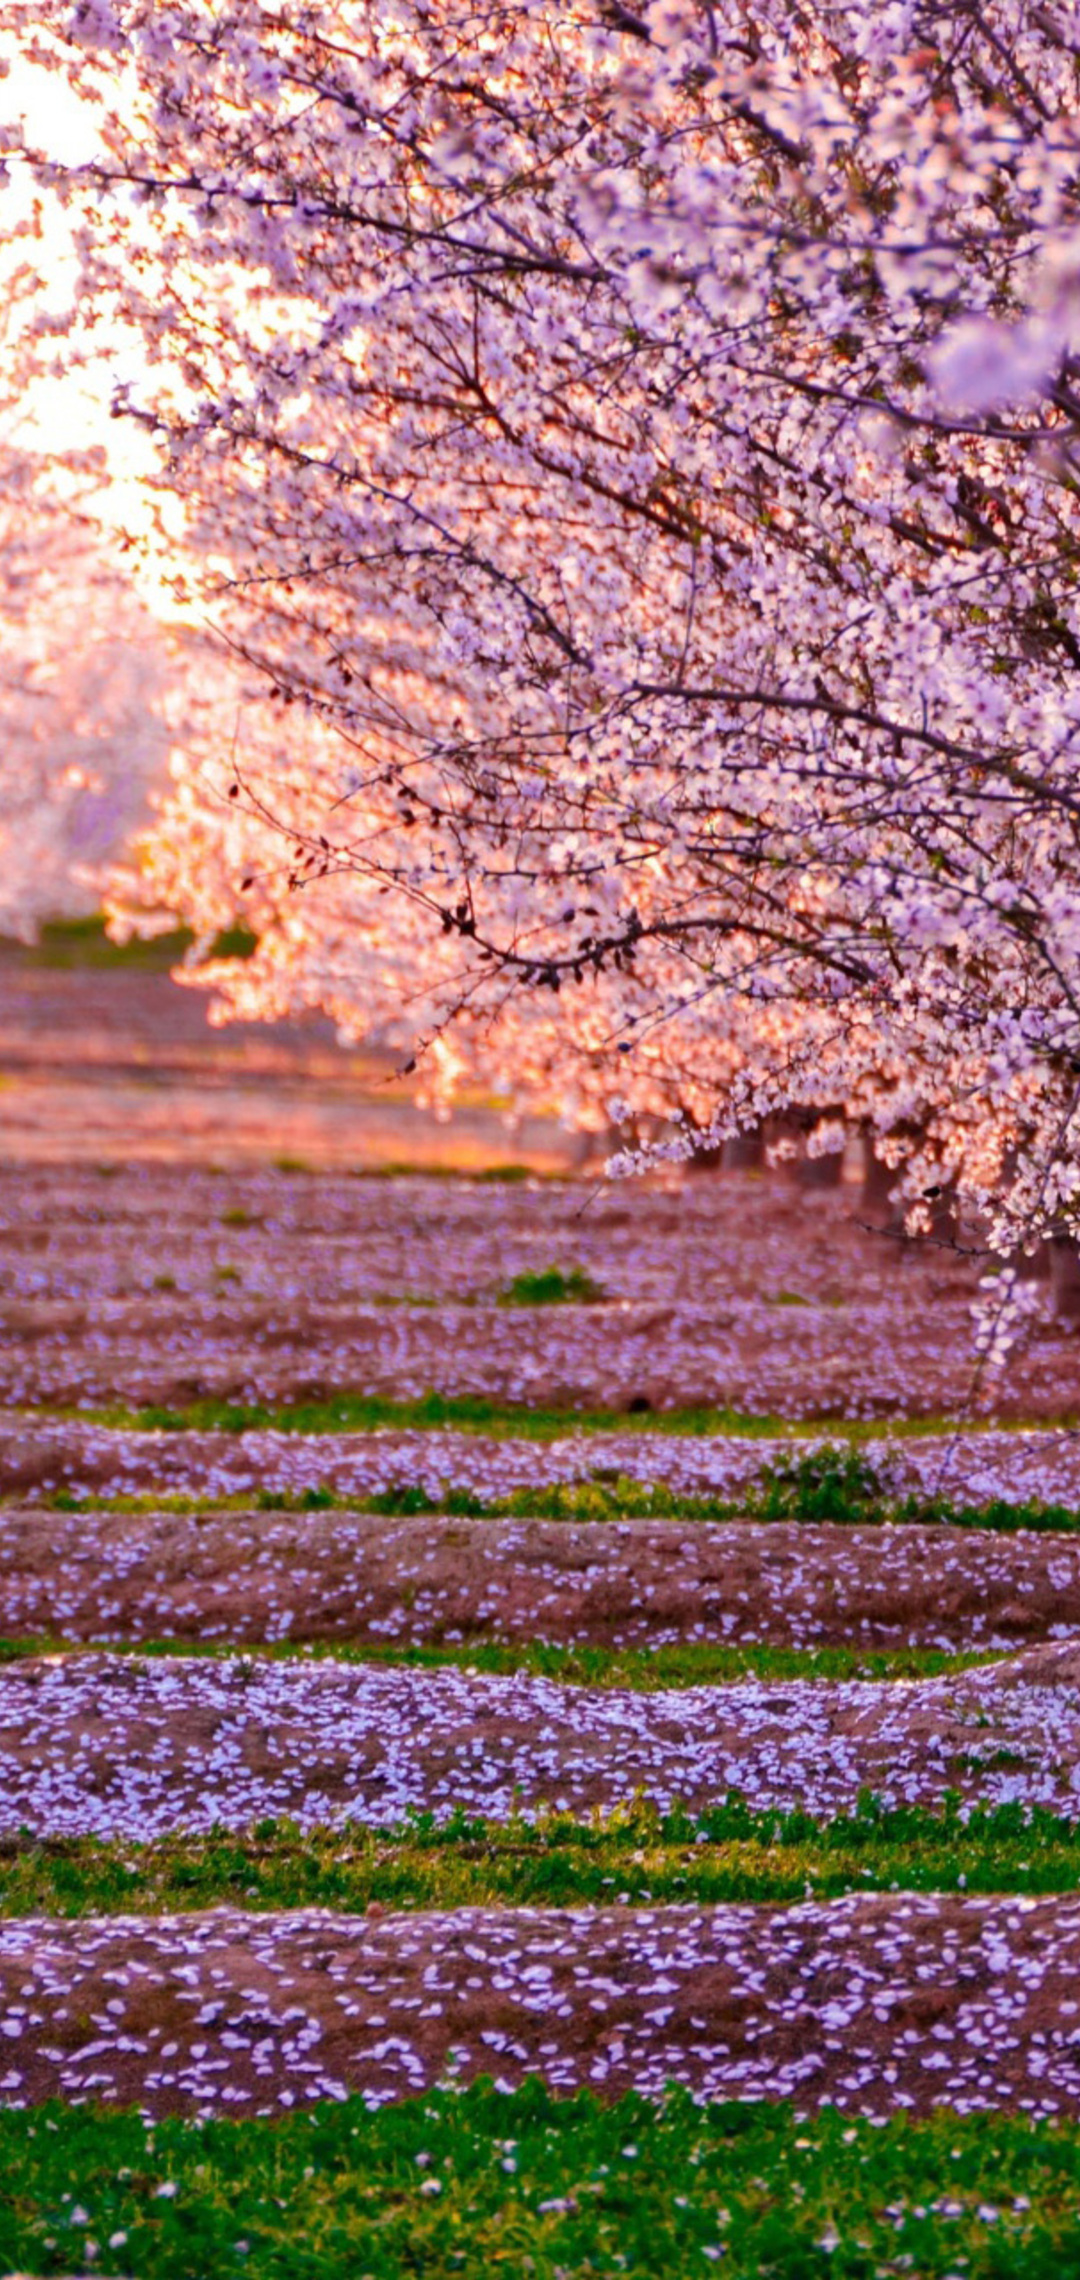 1080x2280 Blossom Nature Pink Flowers Trees One Plus 6huawei P20